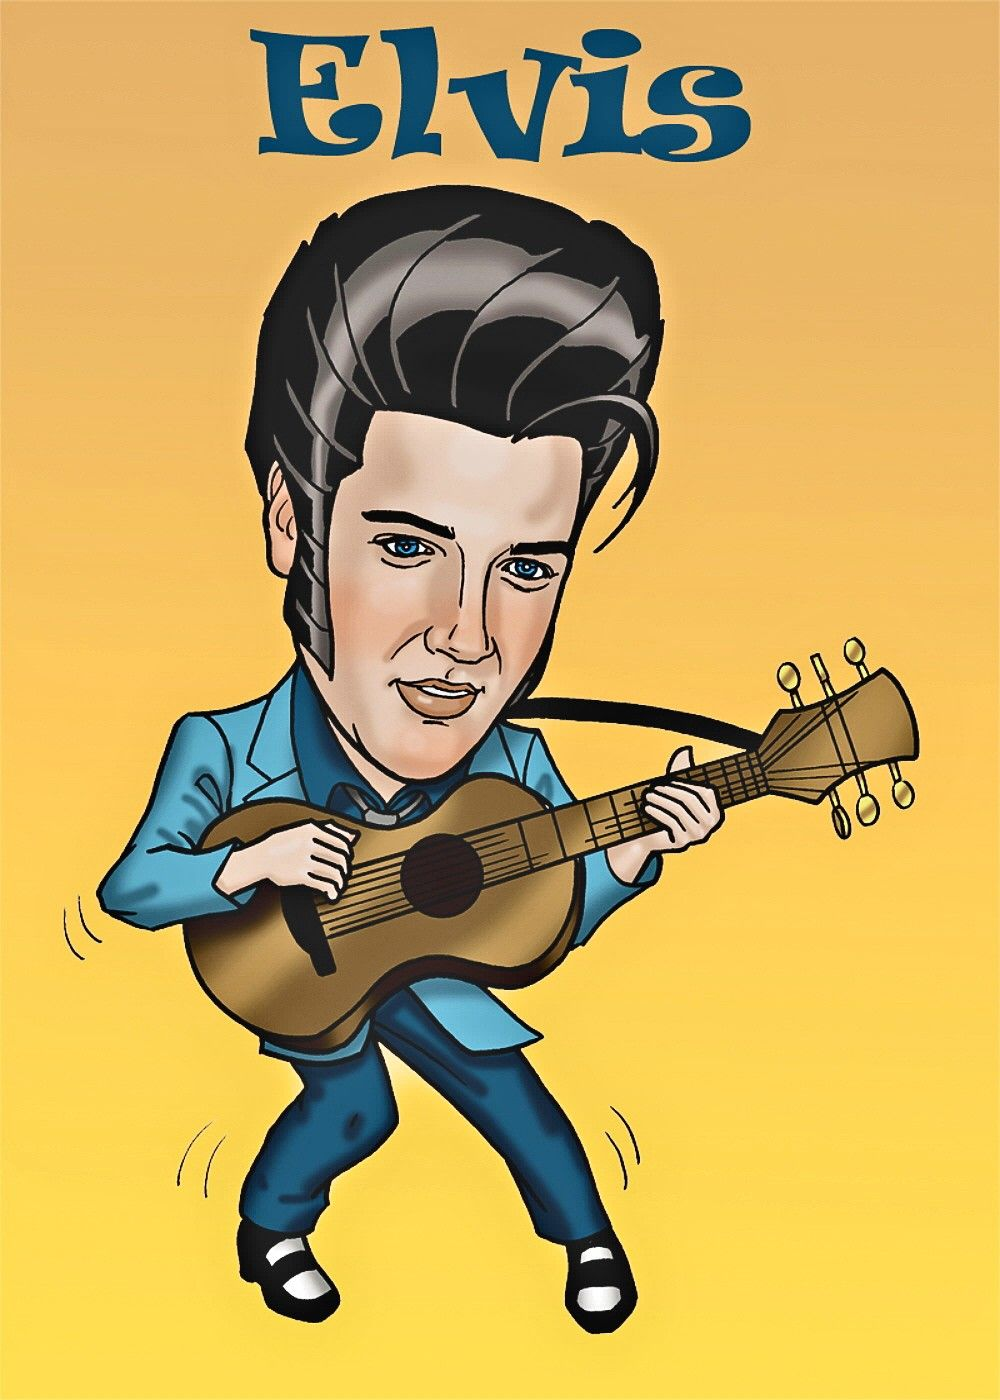 00 Elvis Caricature | Caricatures and Elvis presley